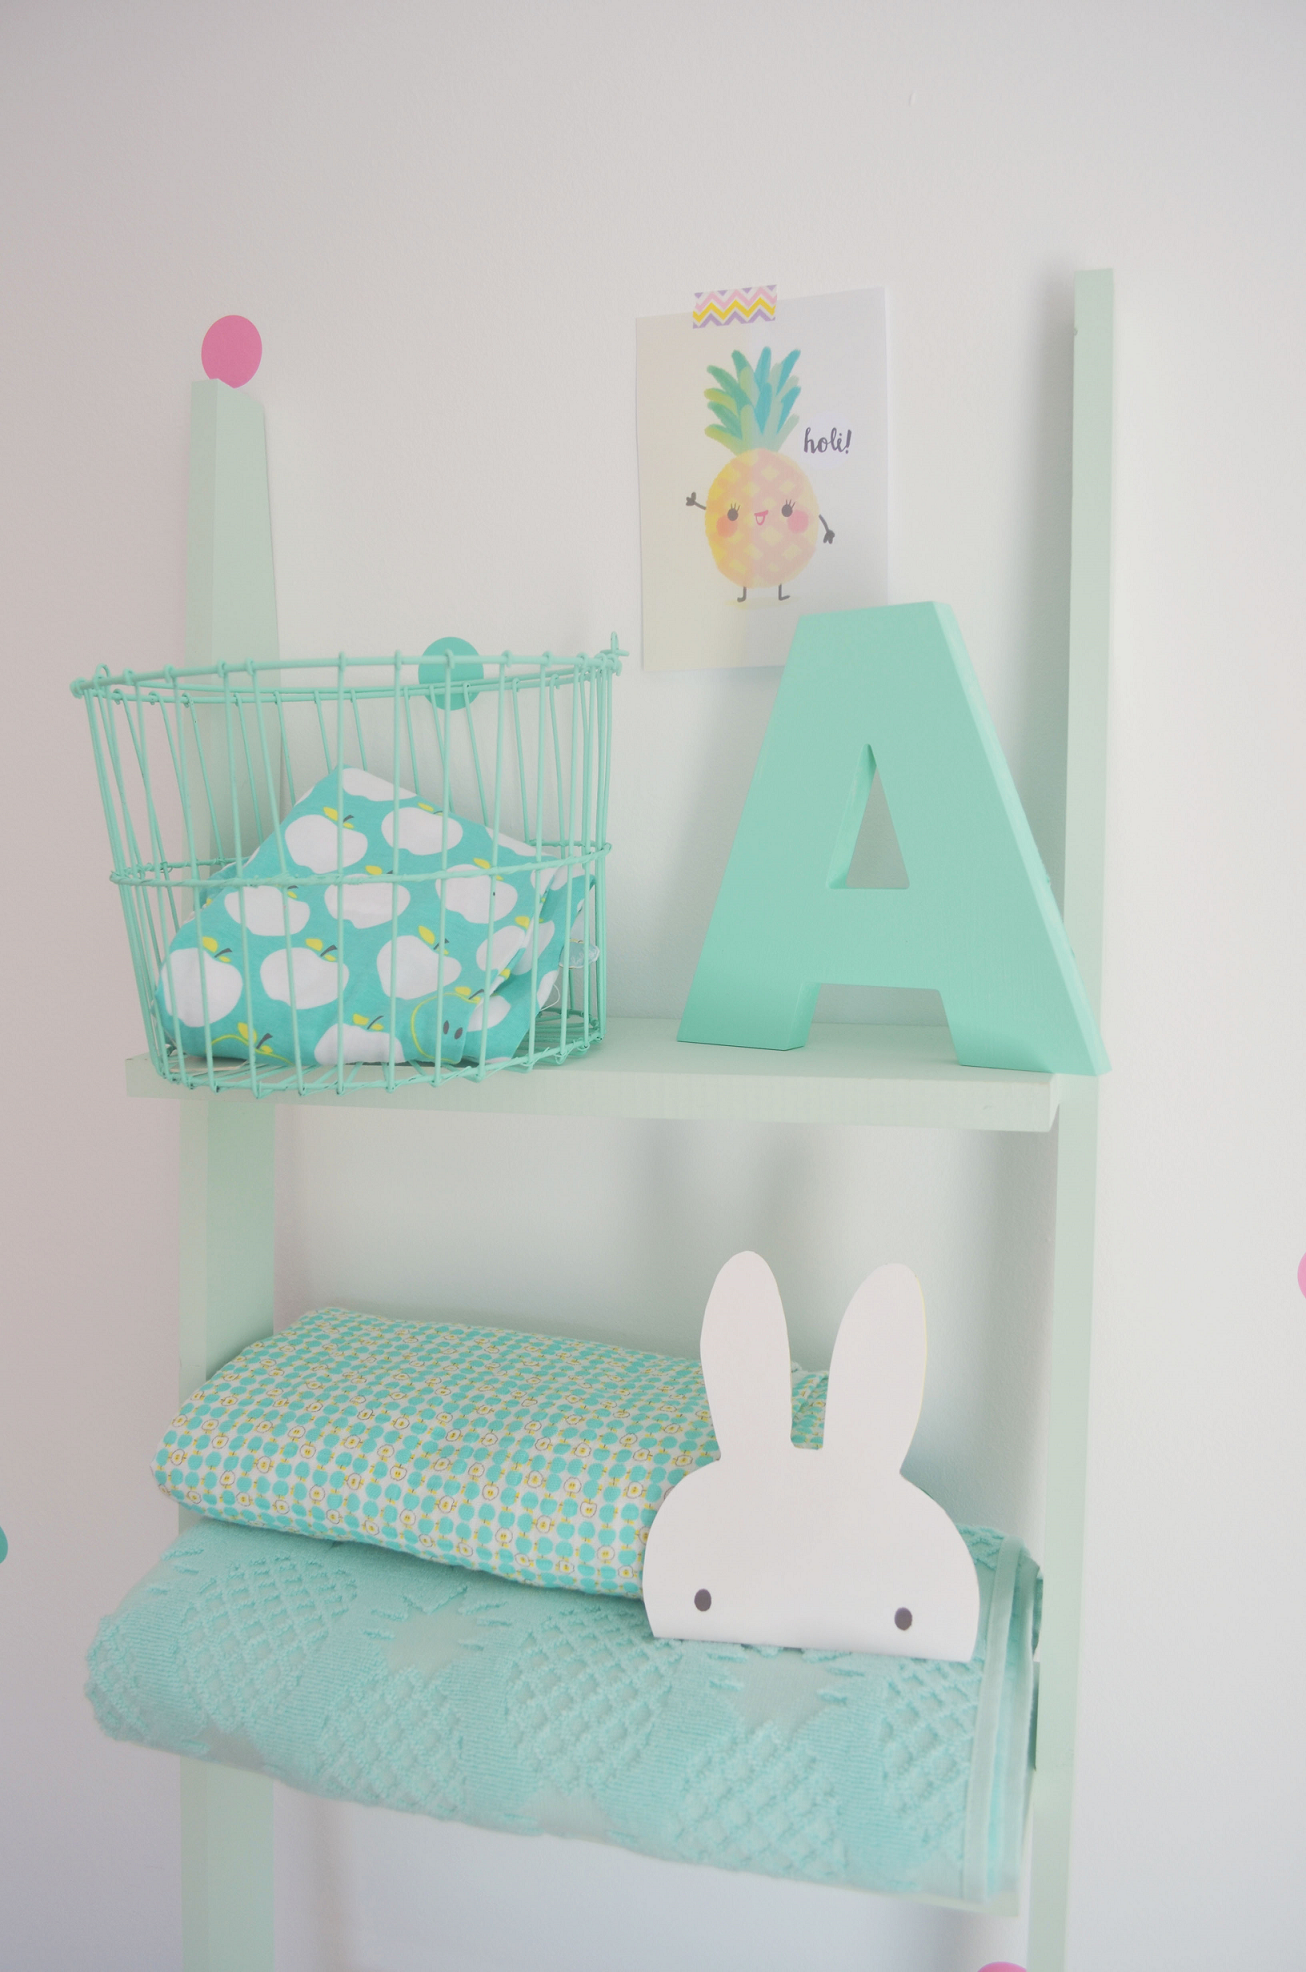 Deco kids blog de decoraci n infantil cosas bellas para - Estanterias originales de pared ...